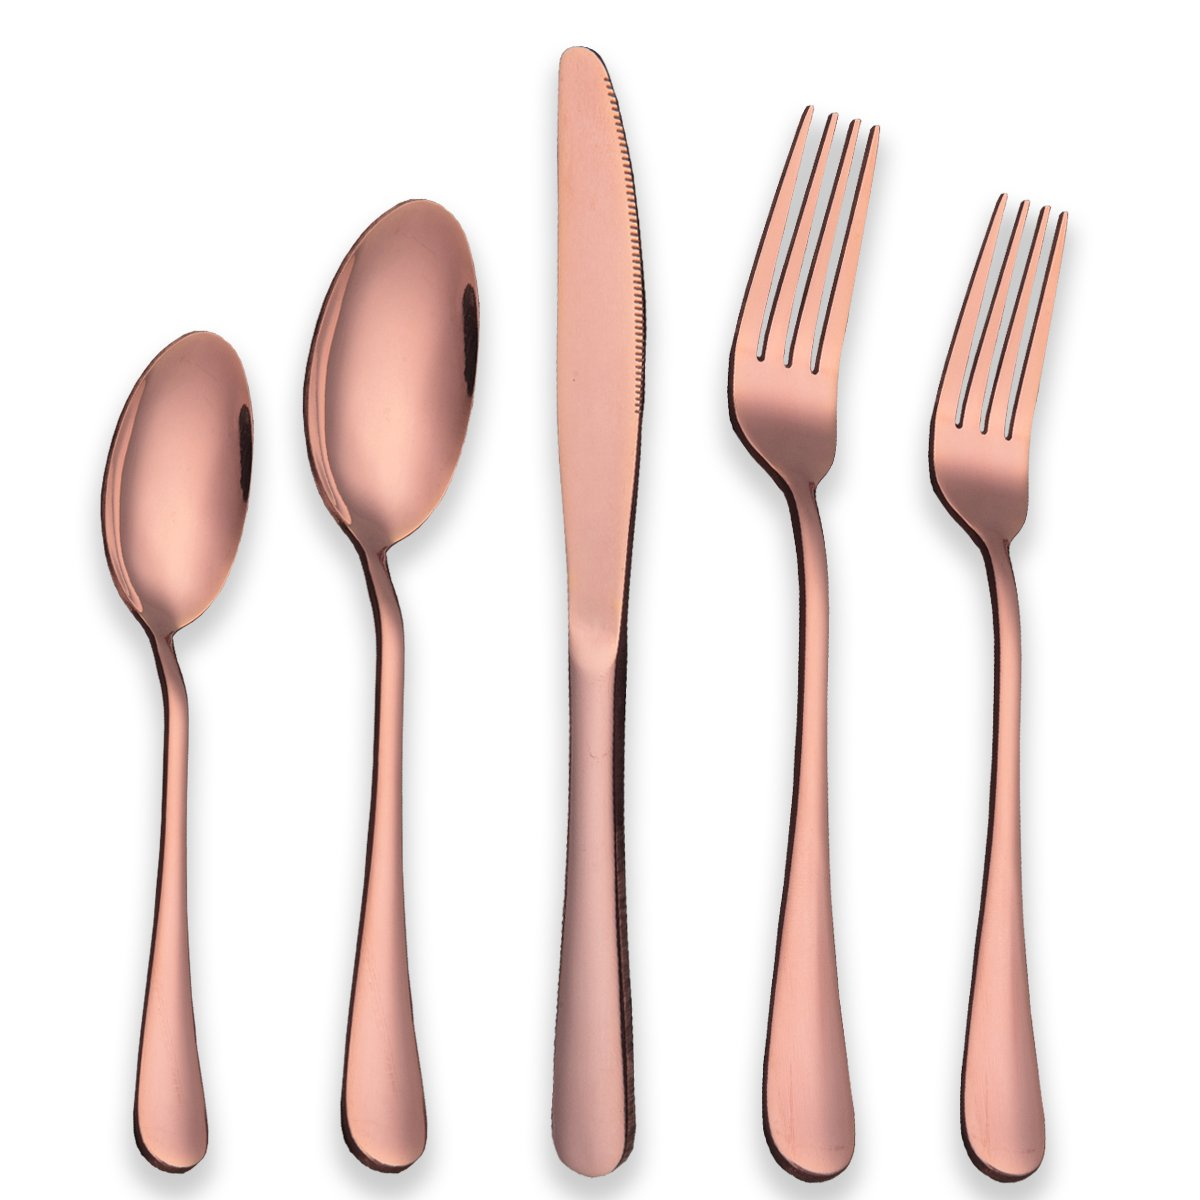 Berglander Stainless Steel Copper Color Flatware Set Rose Gold, 20 Piece Rose Gold Plated Stainless Steel Silverware Set Cutlery Sets, Service for 4 (20 piece) Berglander Houseware CO. LTD (B401+B403+B412+B413+B414)x4